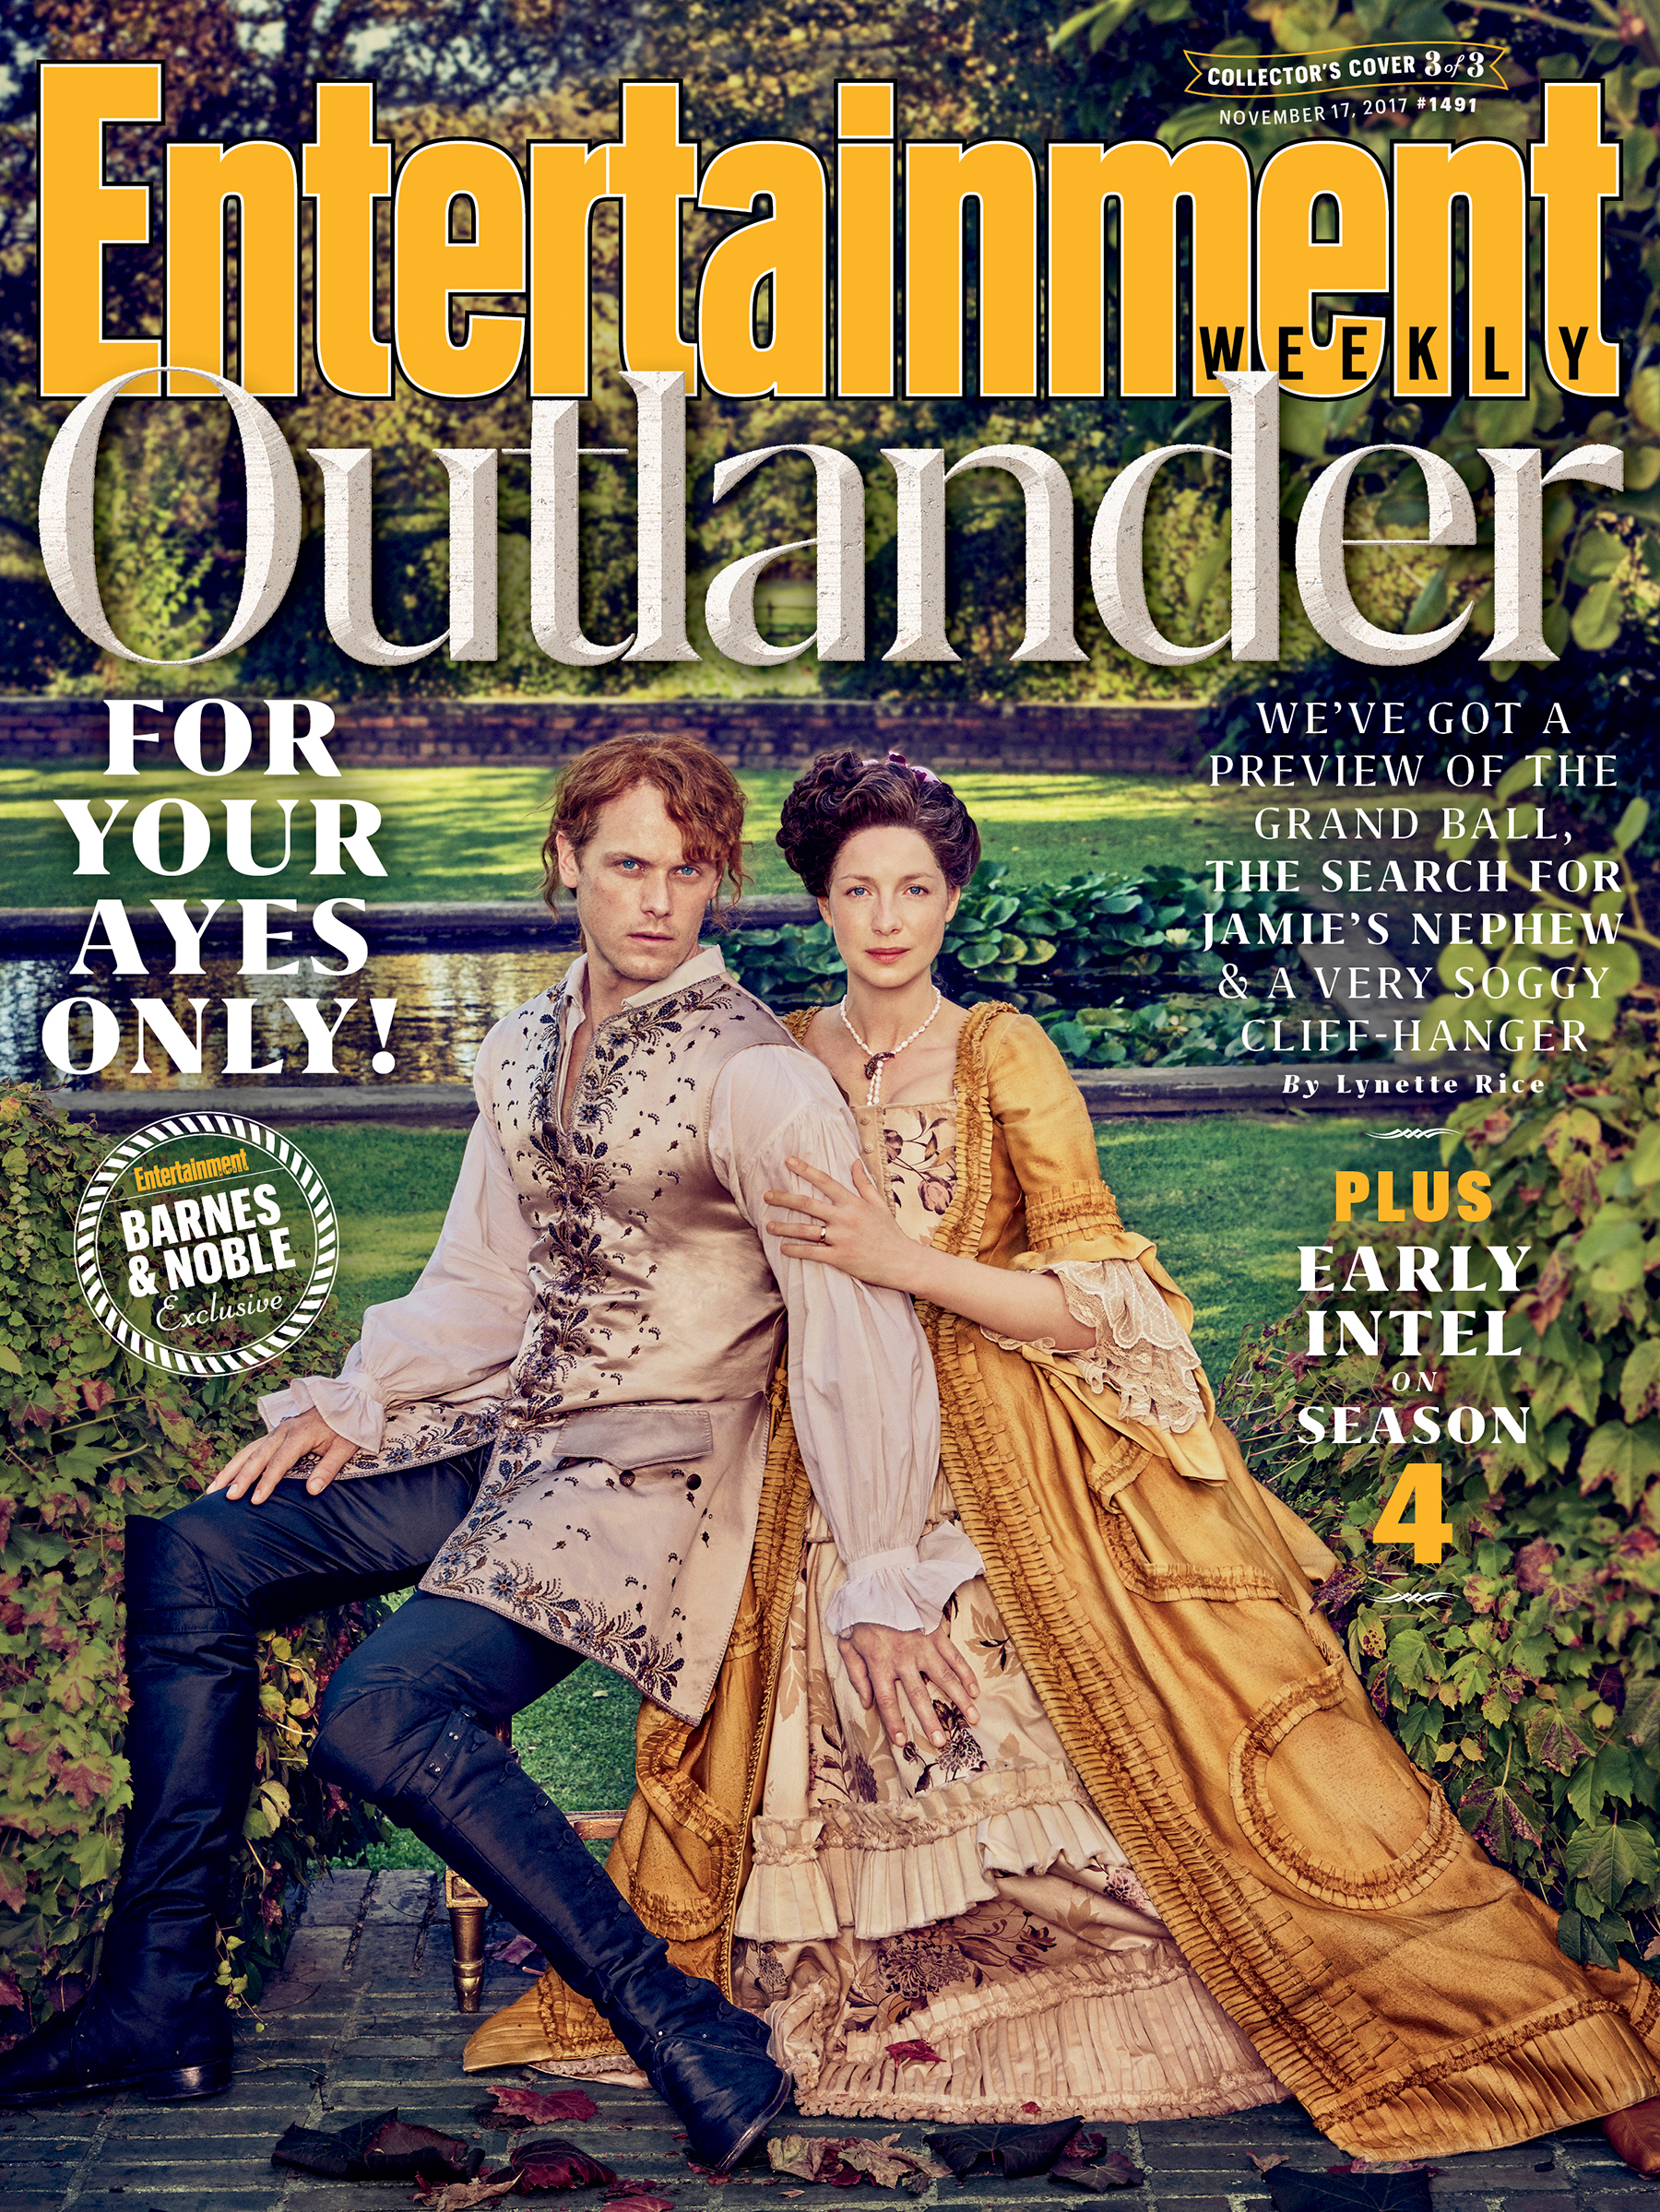 The Newest Outlander Entertainment Weekly Cover Is Here